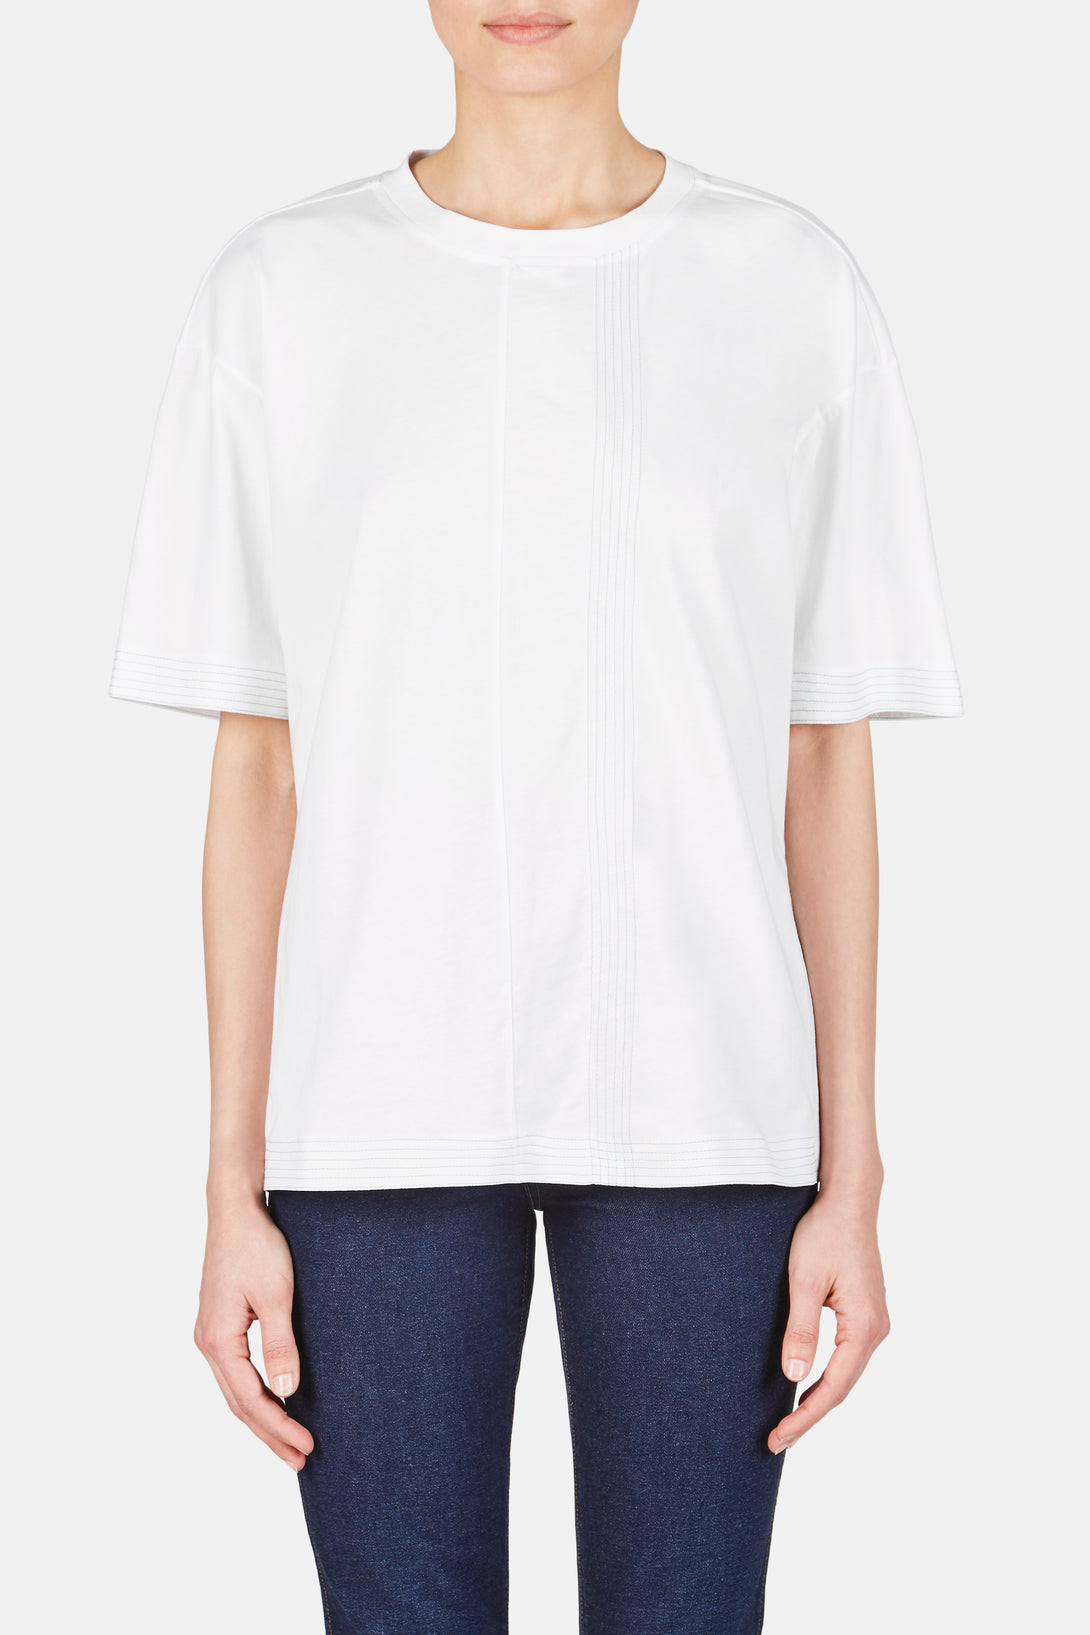 Open Tie Back T-Shirt Top - Lily White